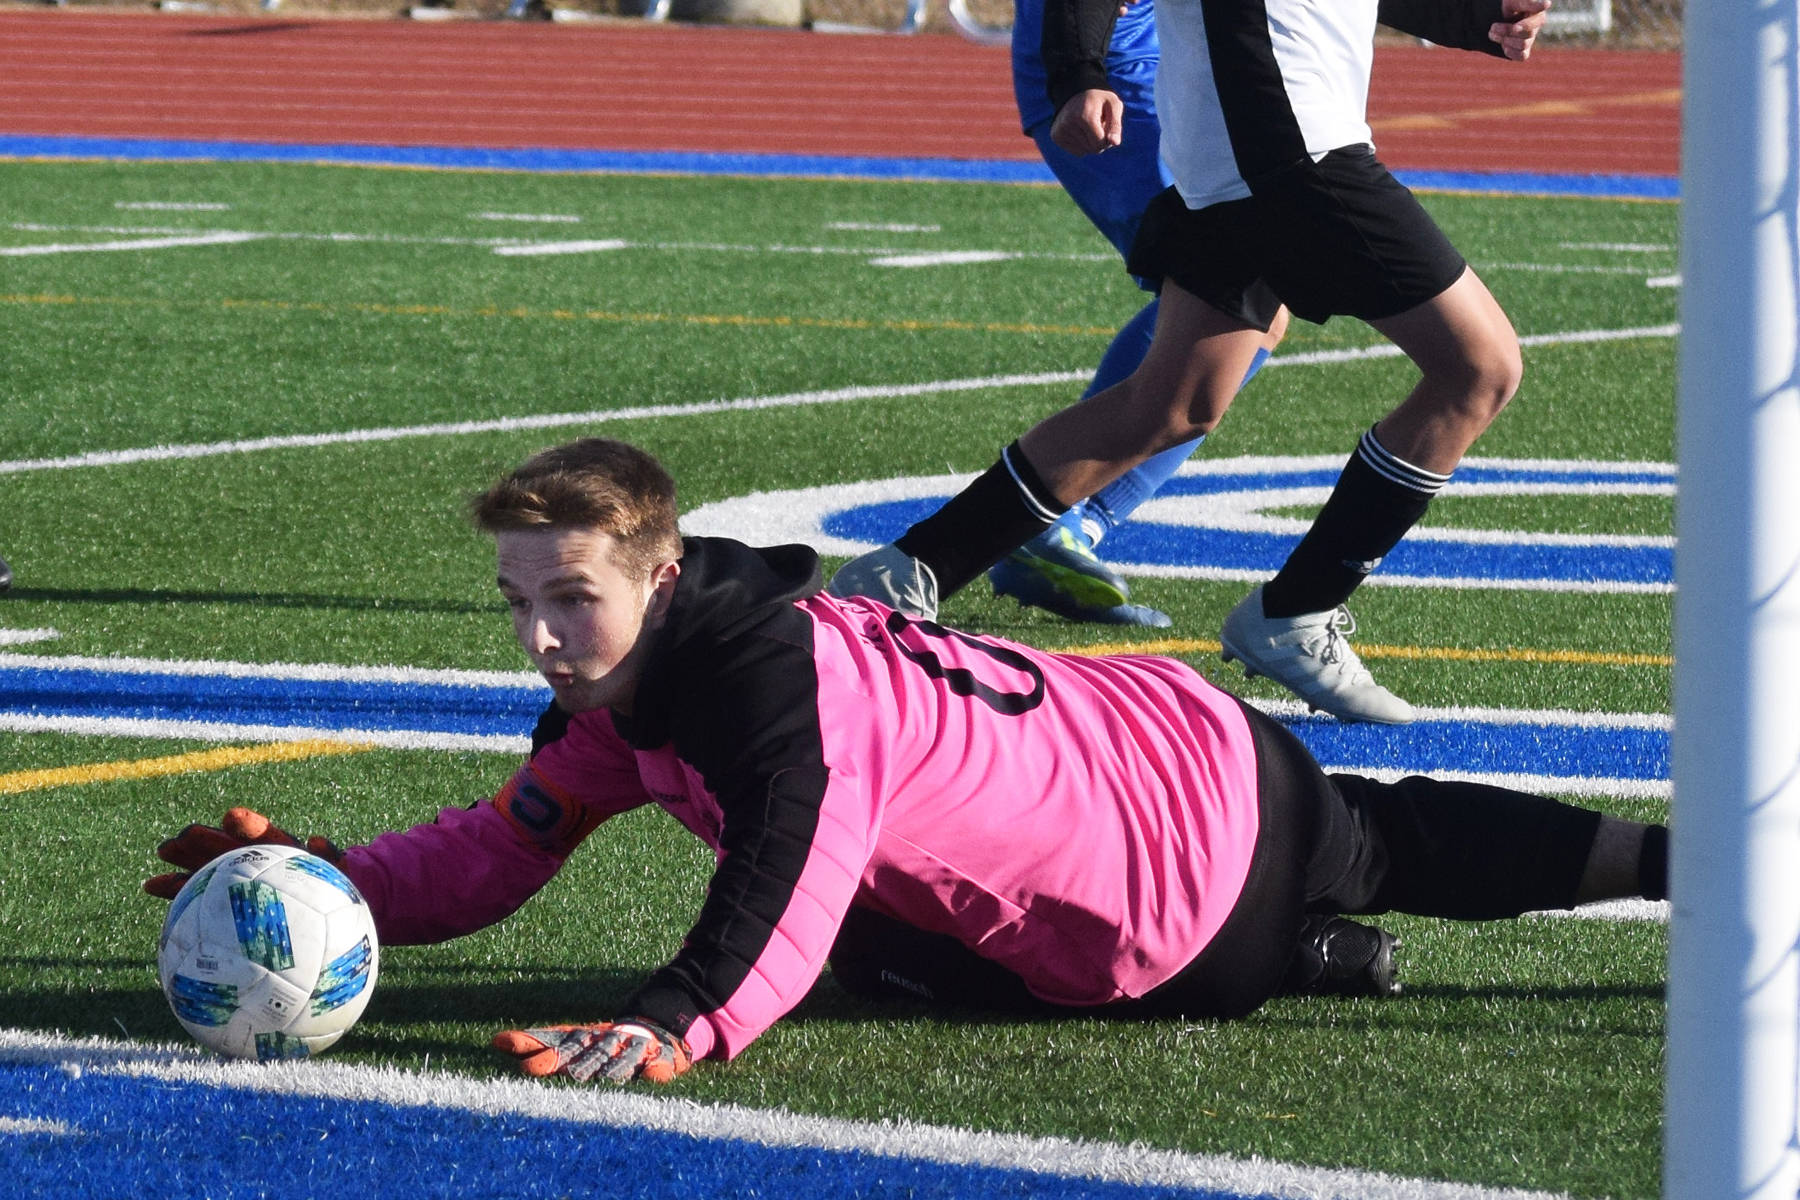 Nikiski goalkeeper Michael Eiter corrals a save Tuesday in a Peninsula Conference game at Soldotna High School. (Photo by Joey Klecka/Peninsula Clarion)